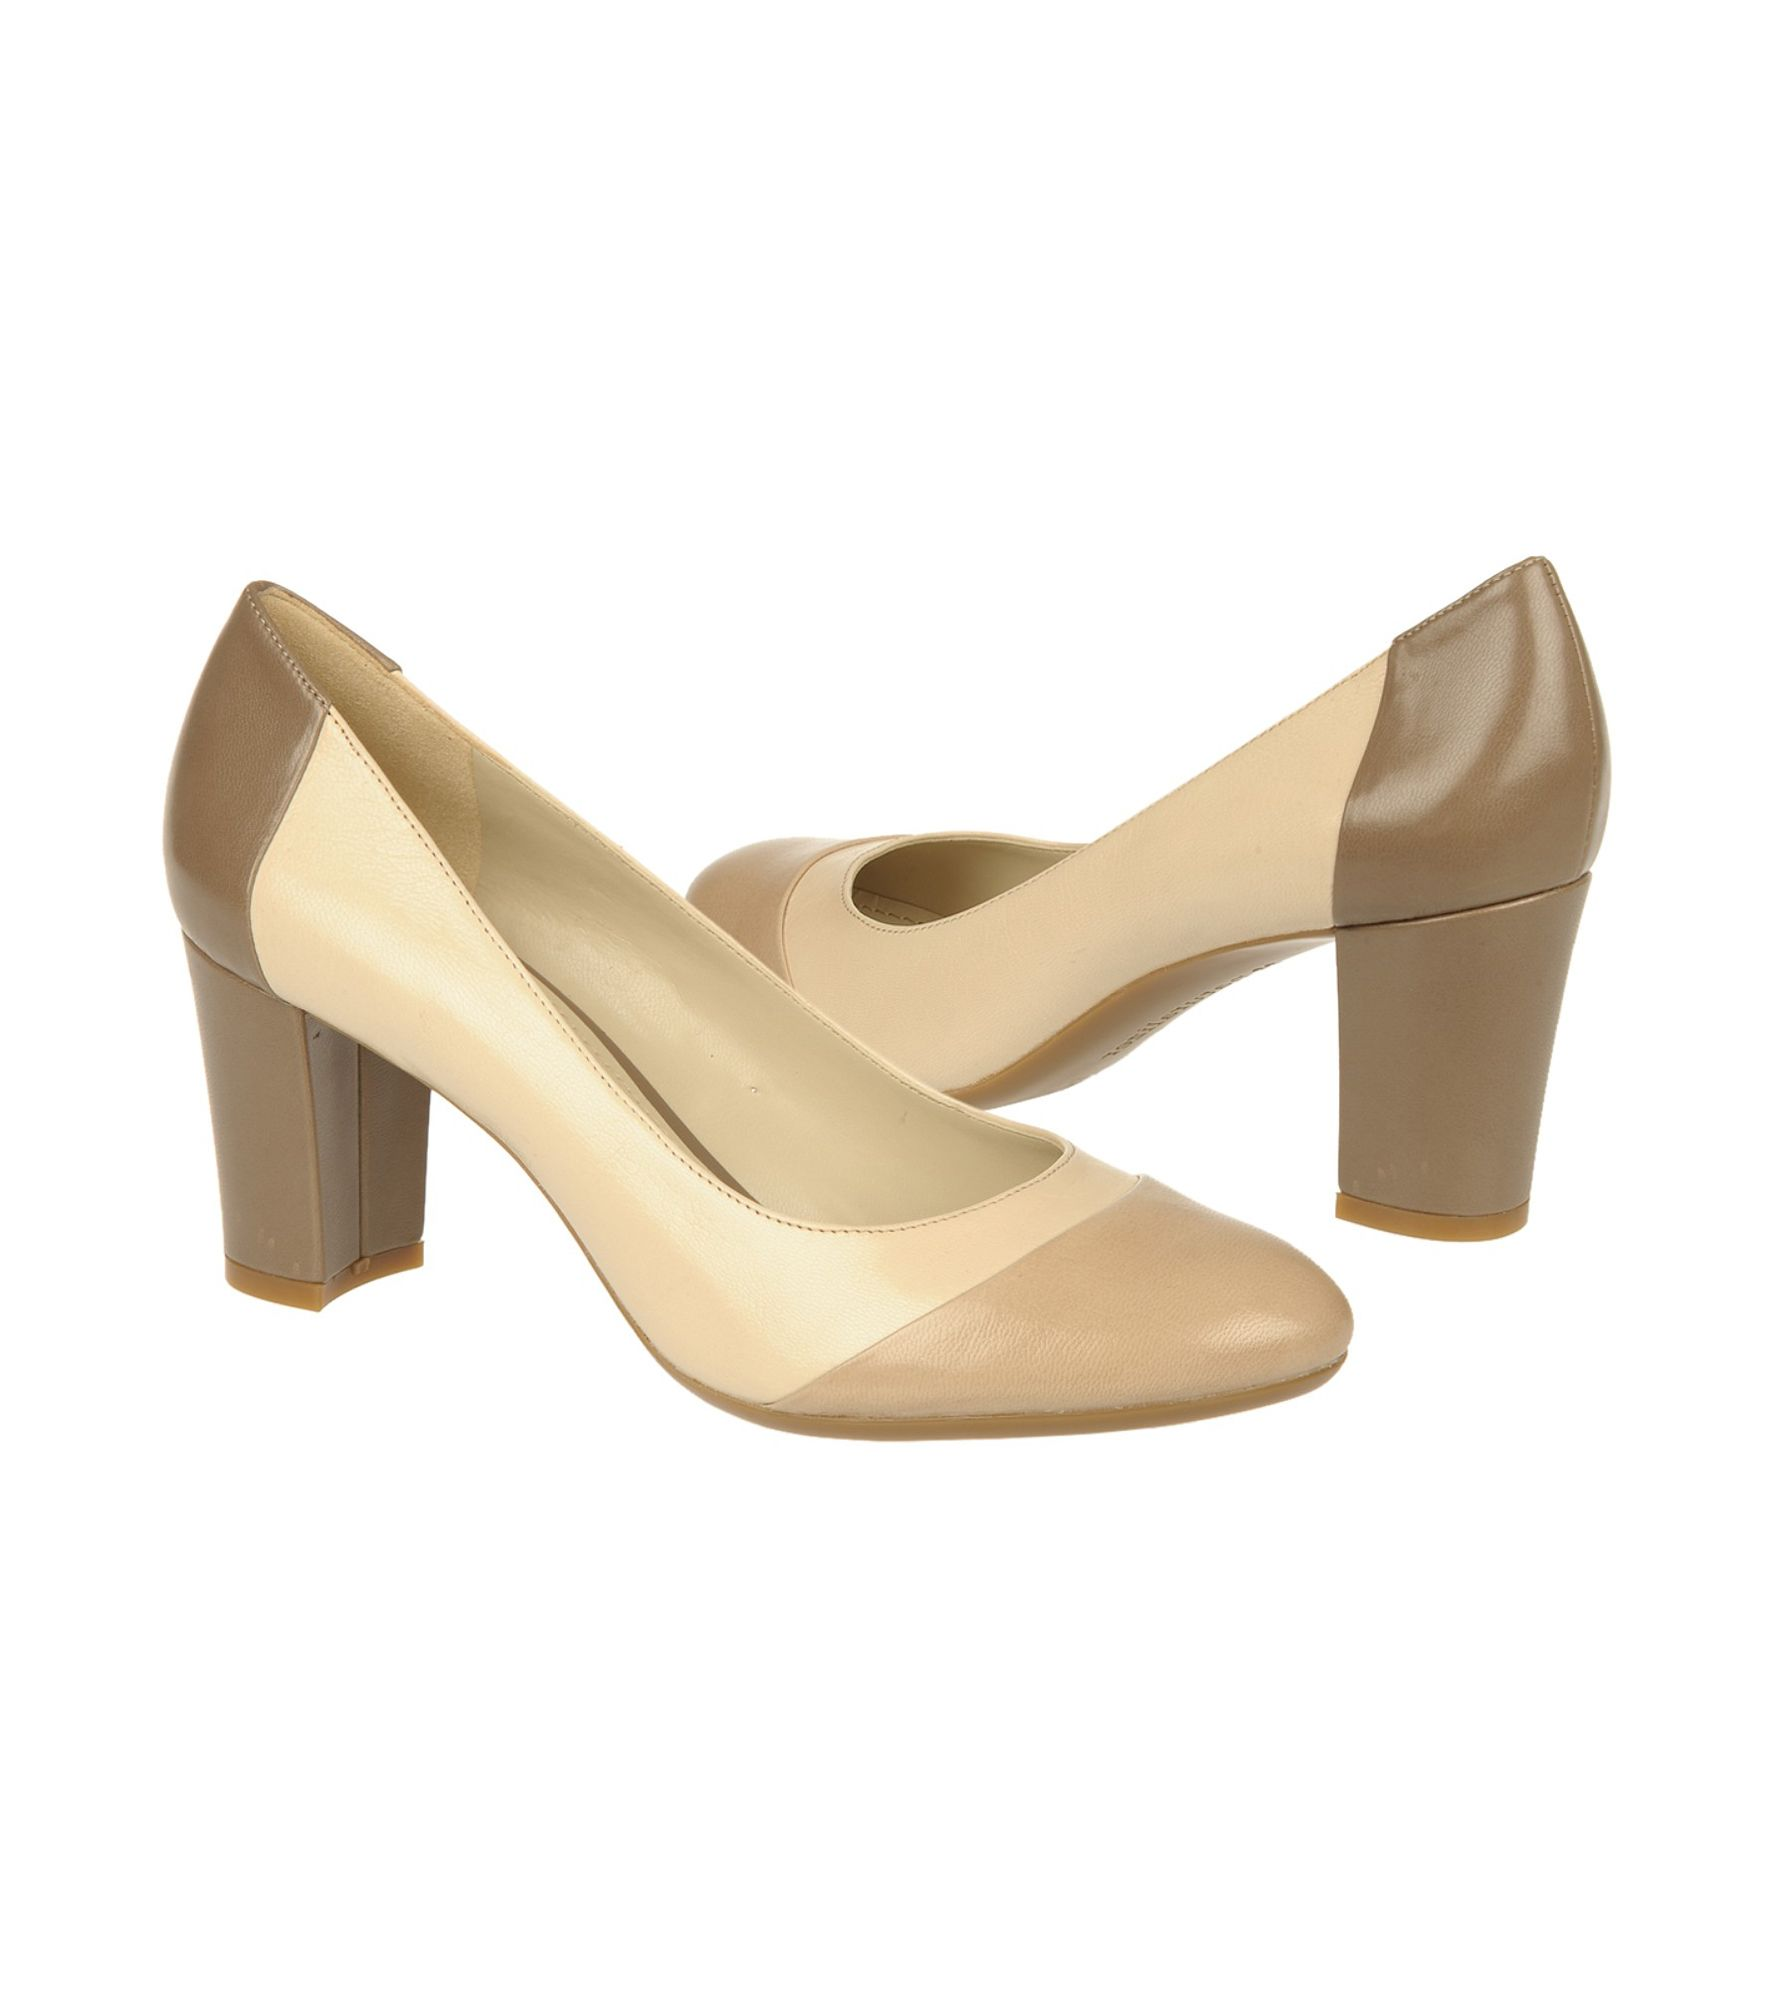 e0b8be4b0c5c Naturalizer Esme Pump